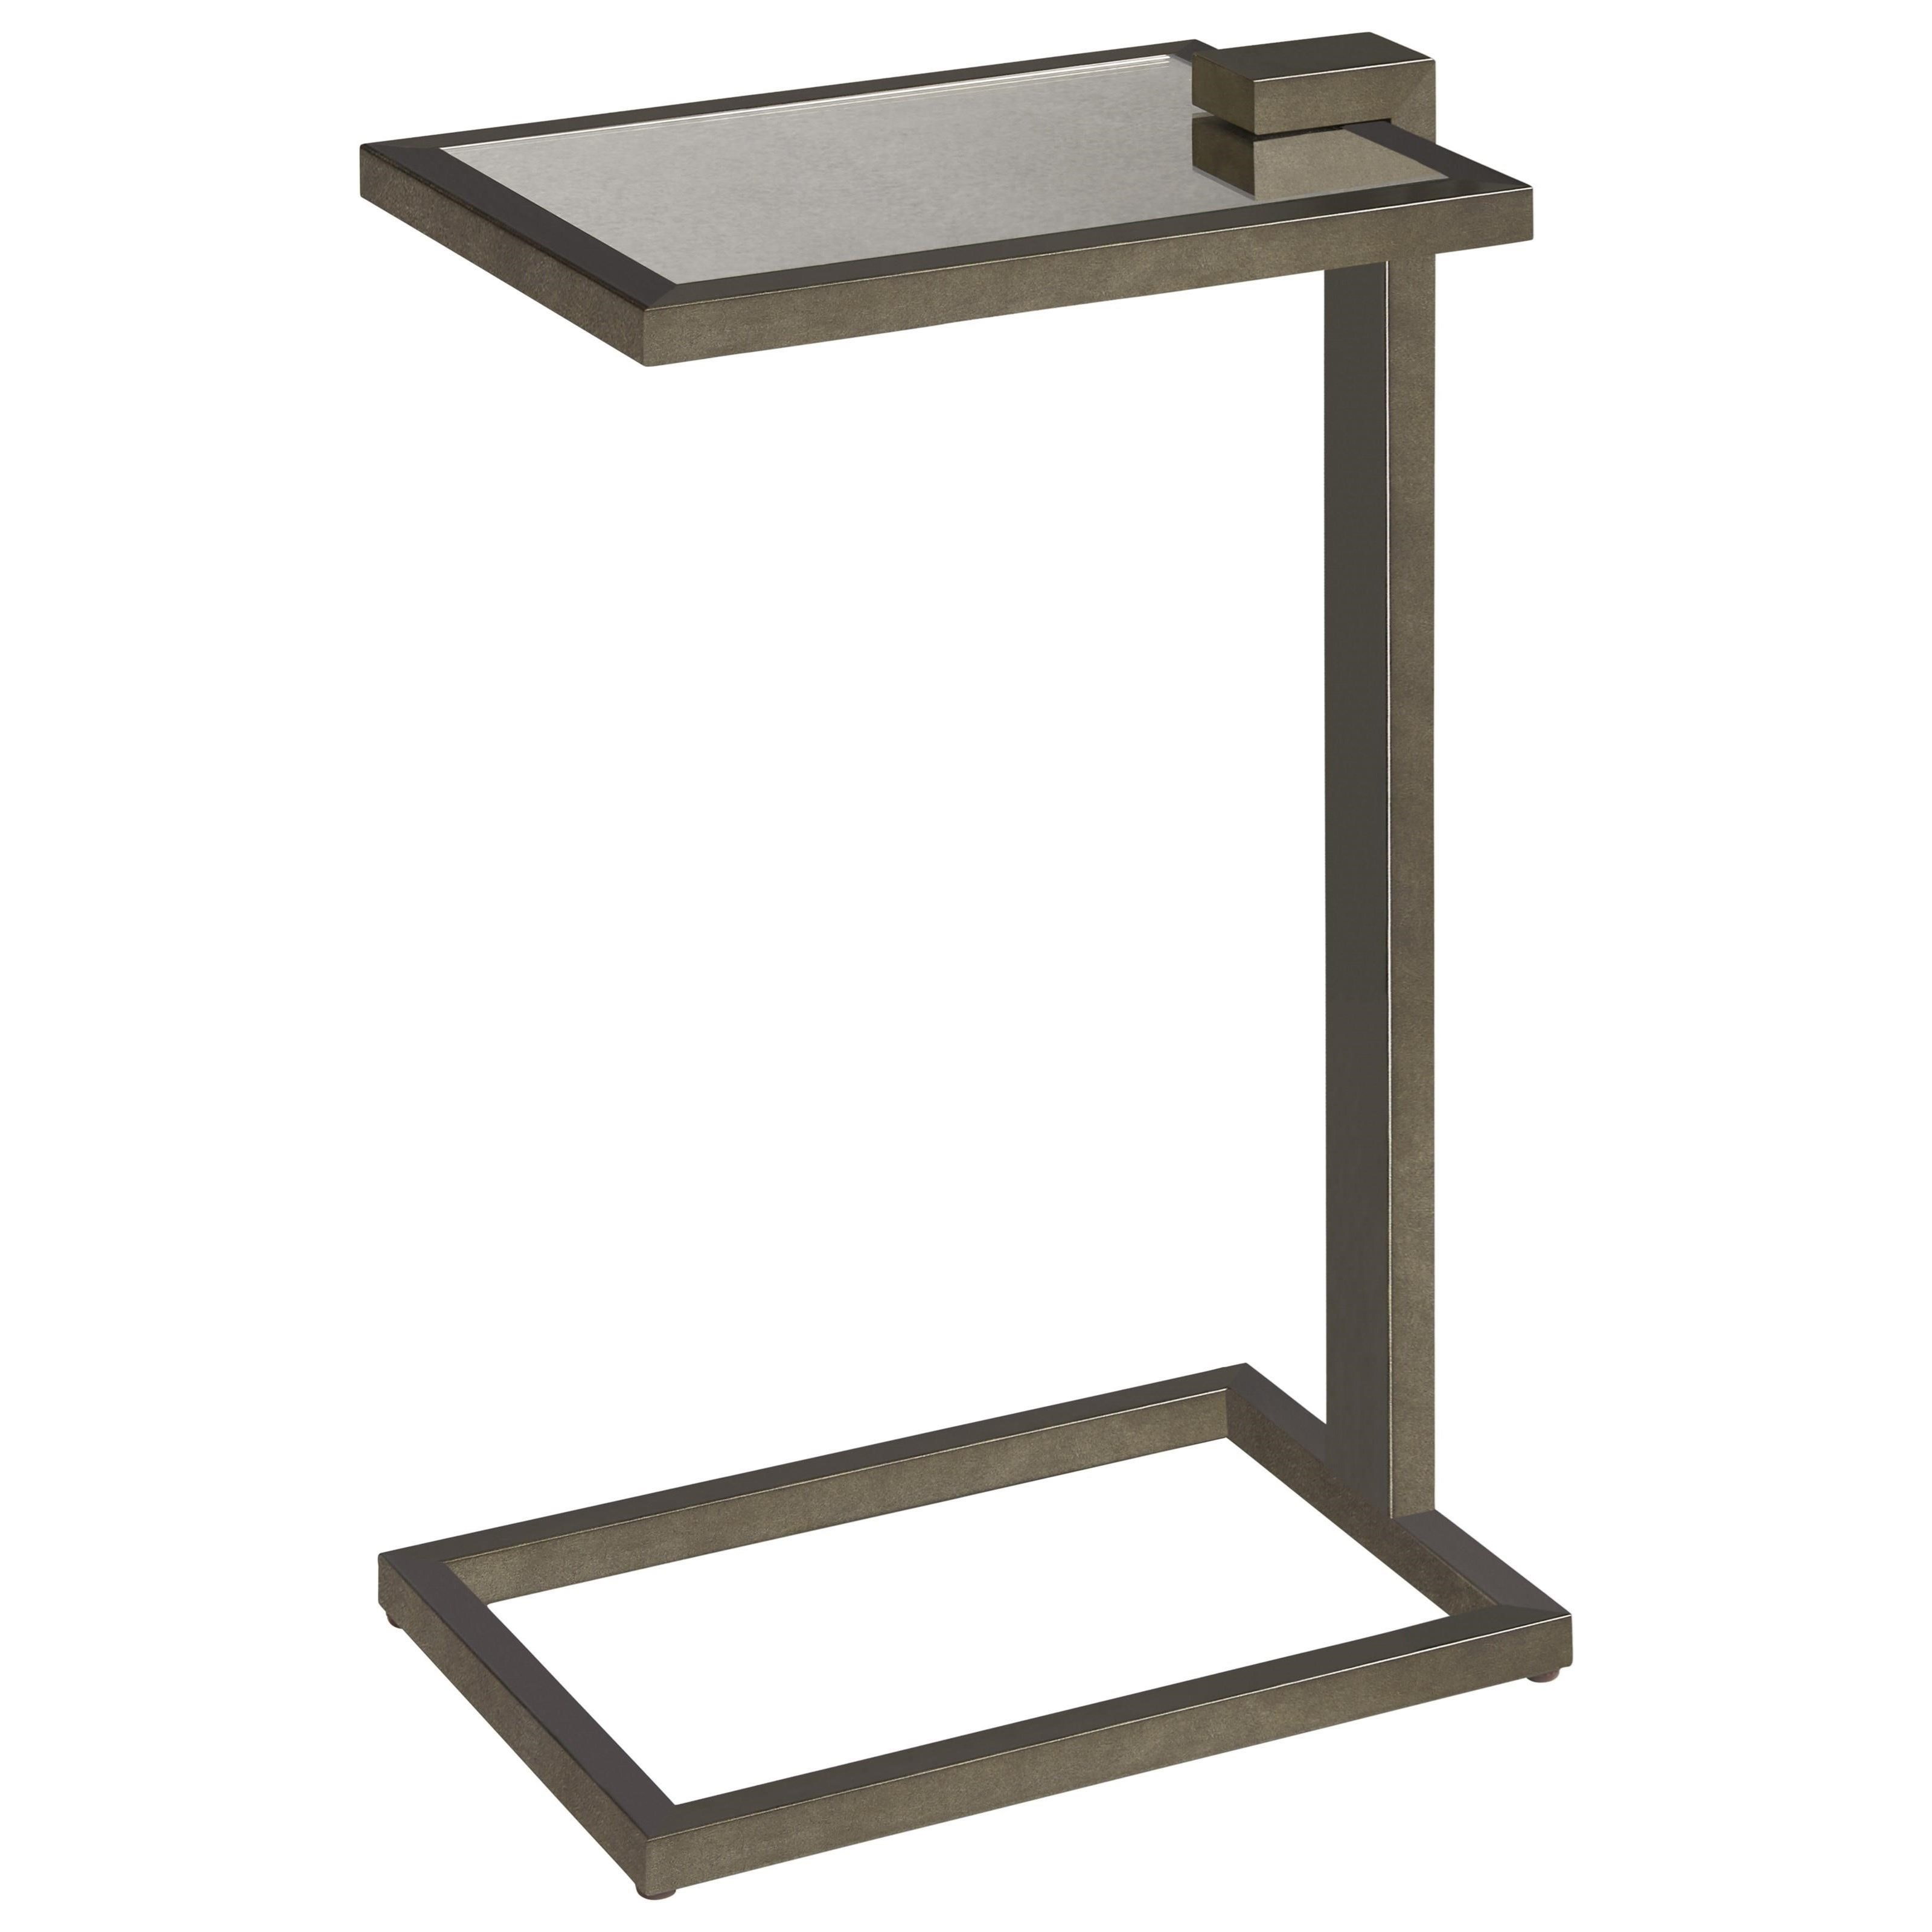 Curated Garrison Chair Side Table by Universal at Baer's Furniture